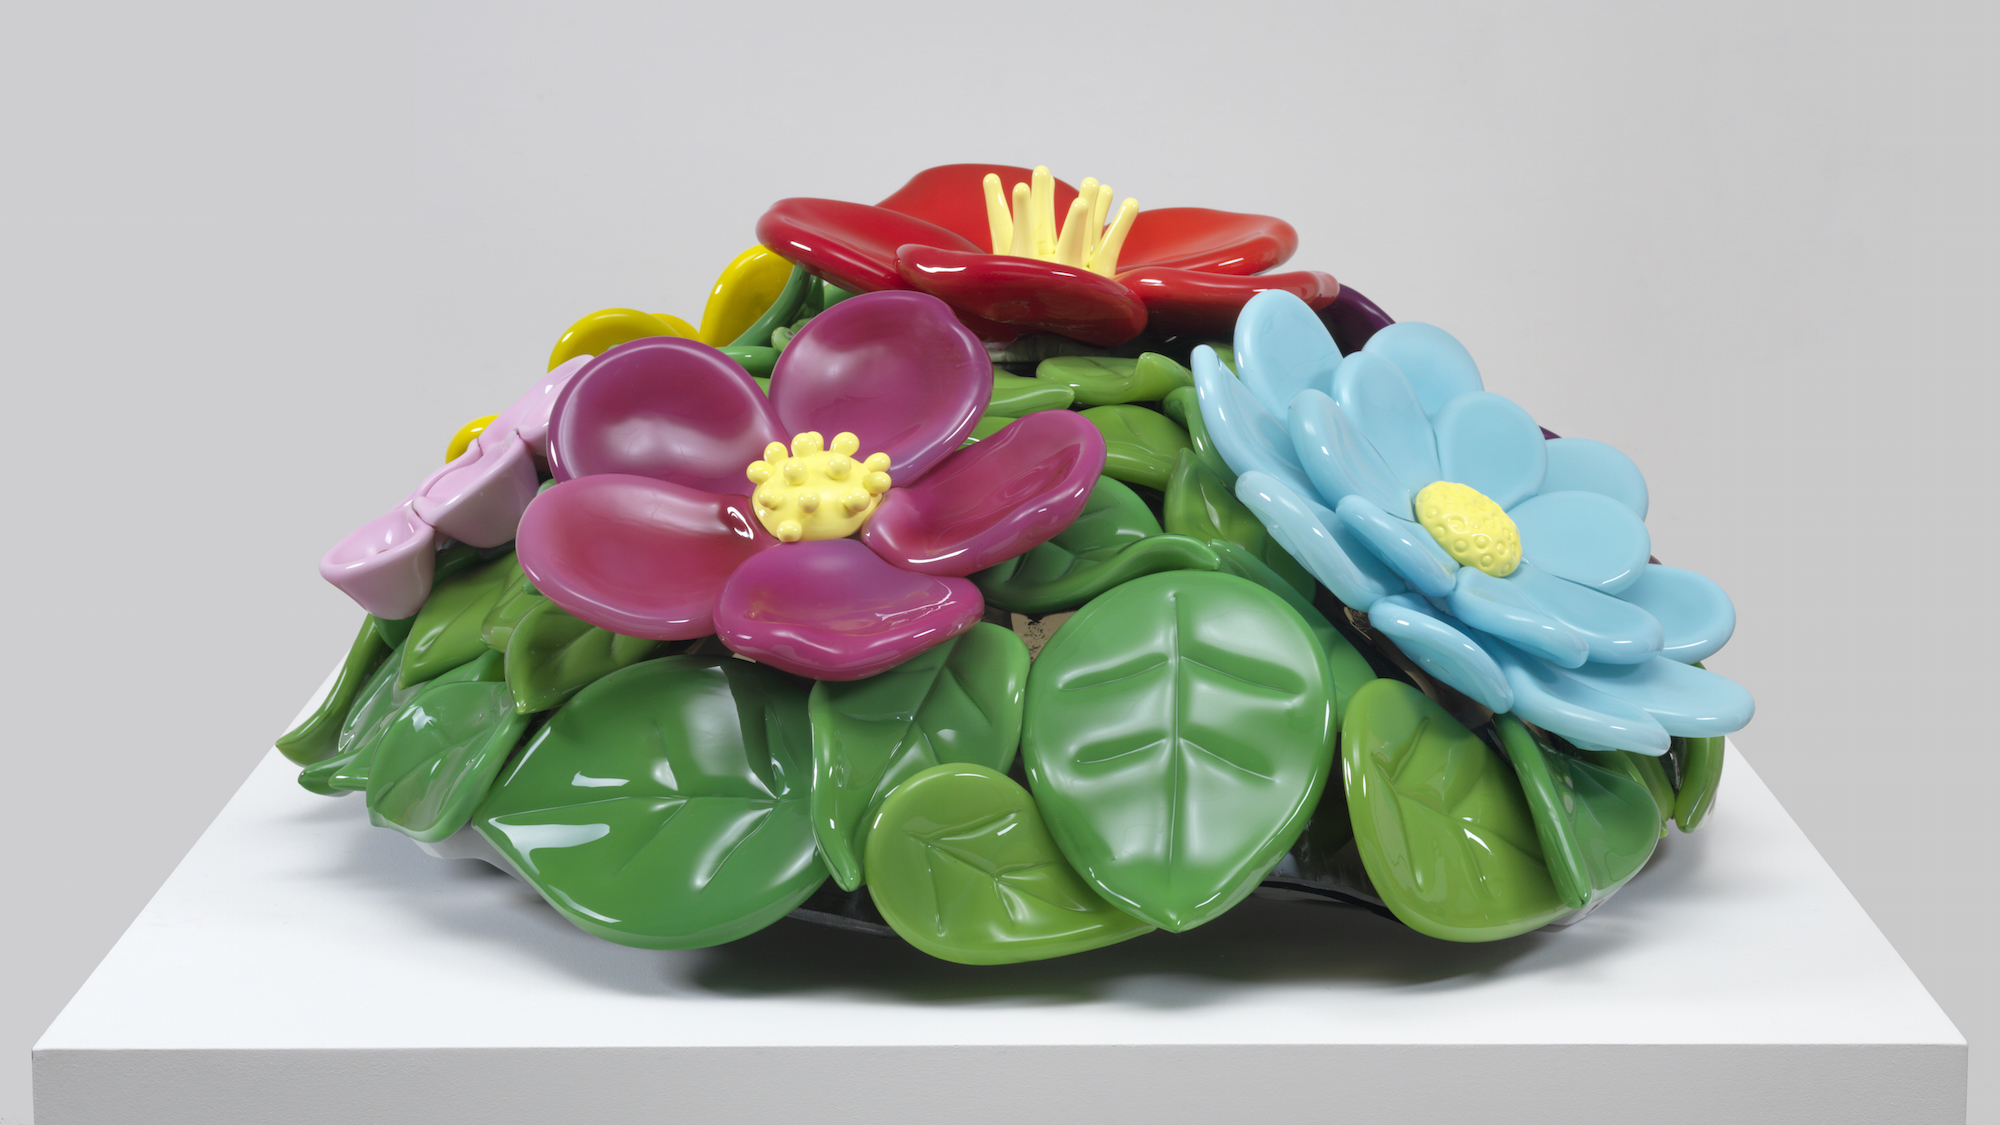 Jeff Koons, Mound of Flowers, 1991, Artist Rooms, Tate and National Galleries of Scotland. Acquired jointly through The d'Offay Donation with assistance from the National Heritage Memorial Fund and the Art Fund 2008, © Jeff Koons. Image courtesy Norwich Castle Museum and Art Gallery.